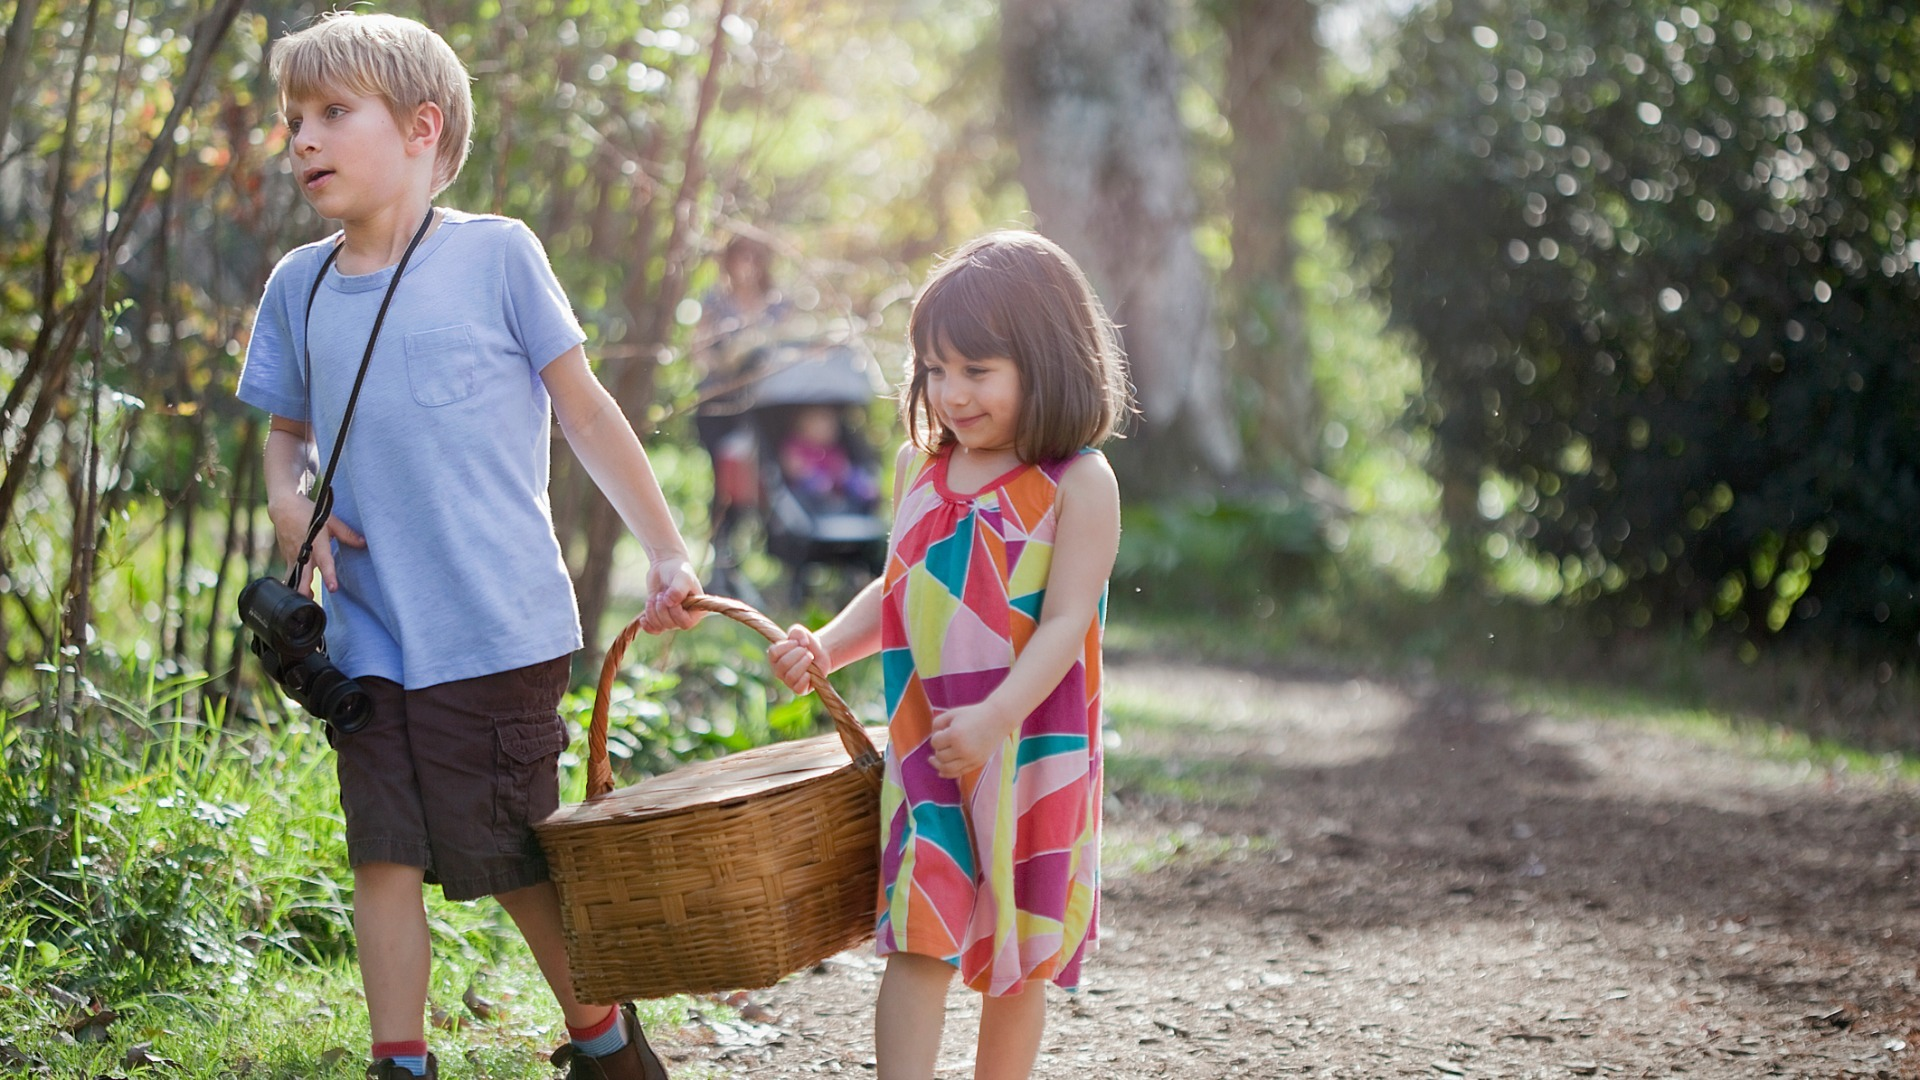 5 Fun Activities To Give Your Kids Some Structure Over Summer Break